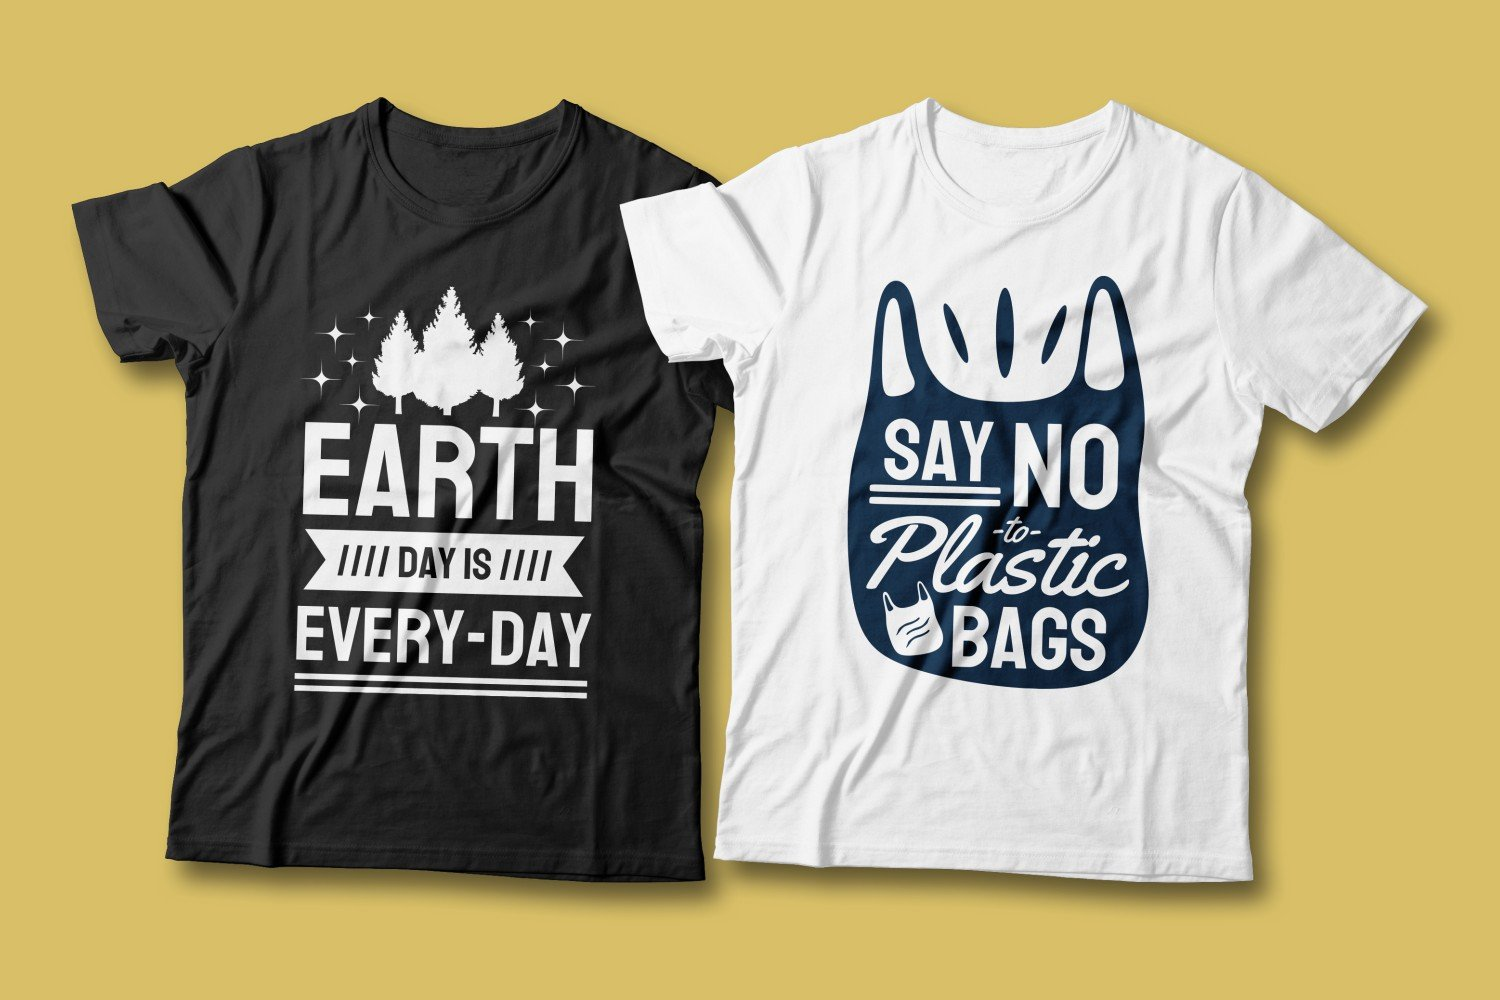 Two T-shirts - white and black. Both are about living in a clean, plastic-free environment.